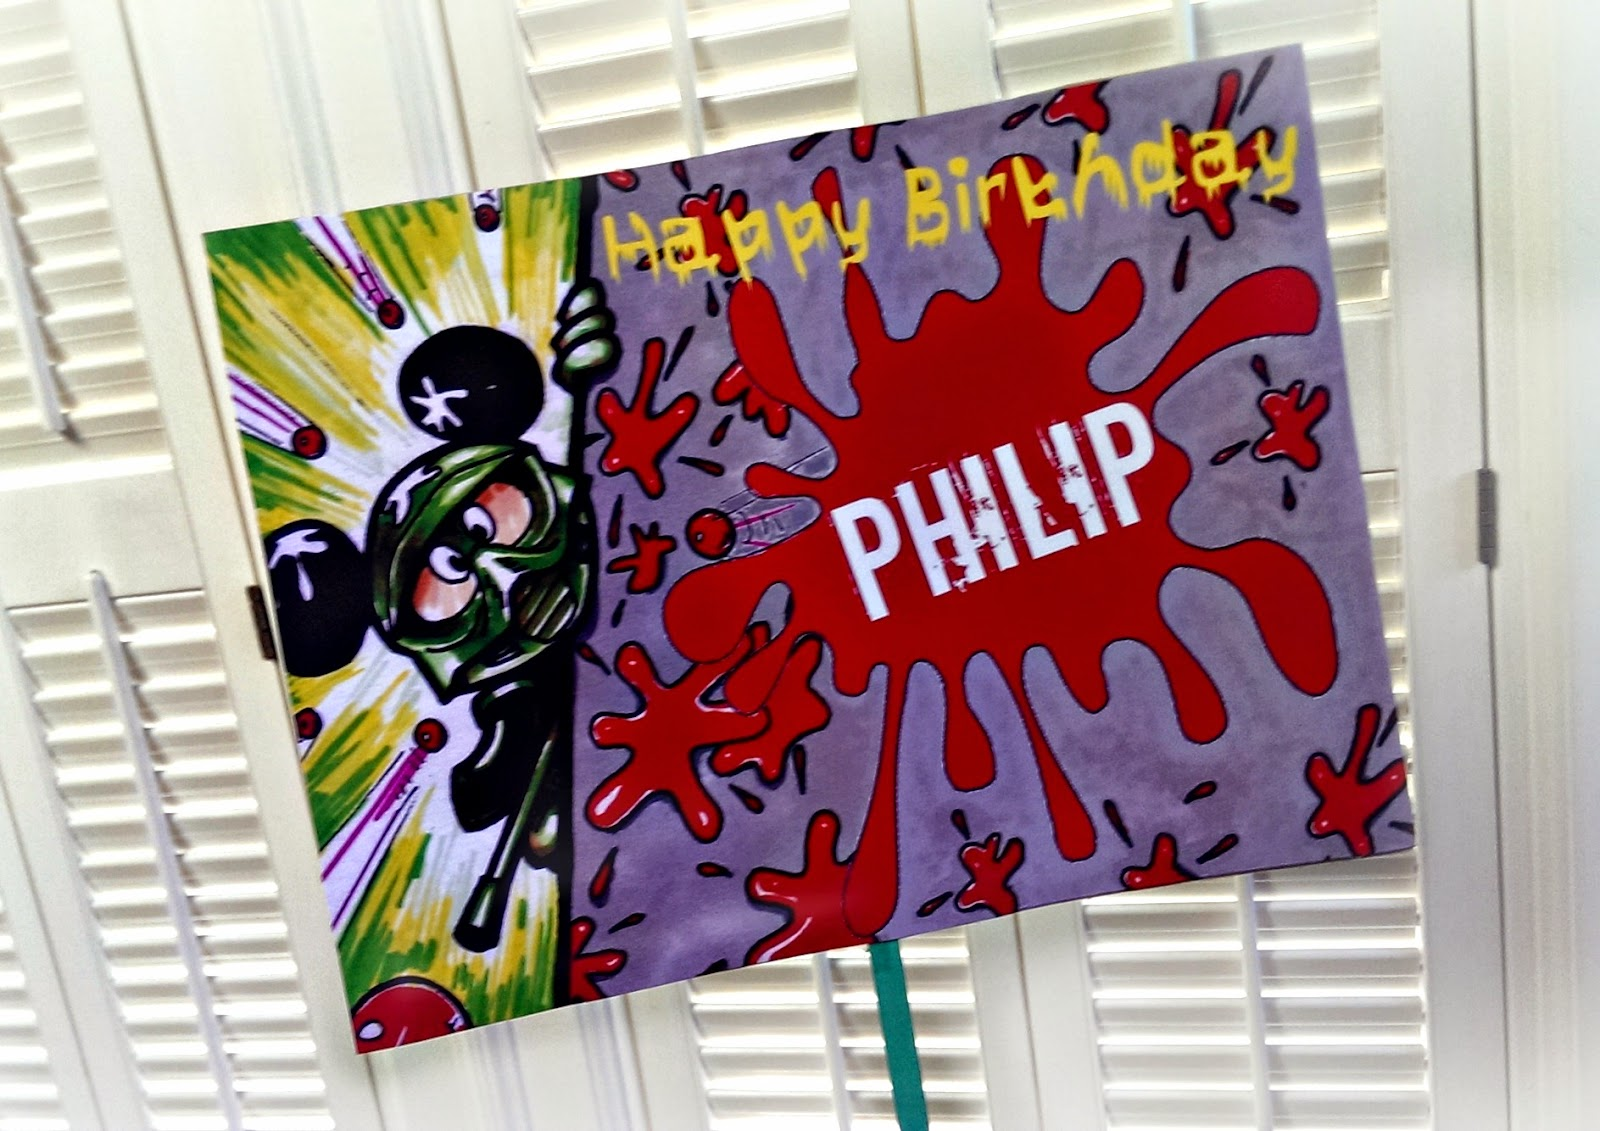 Mickey Paintball party birthday sign